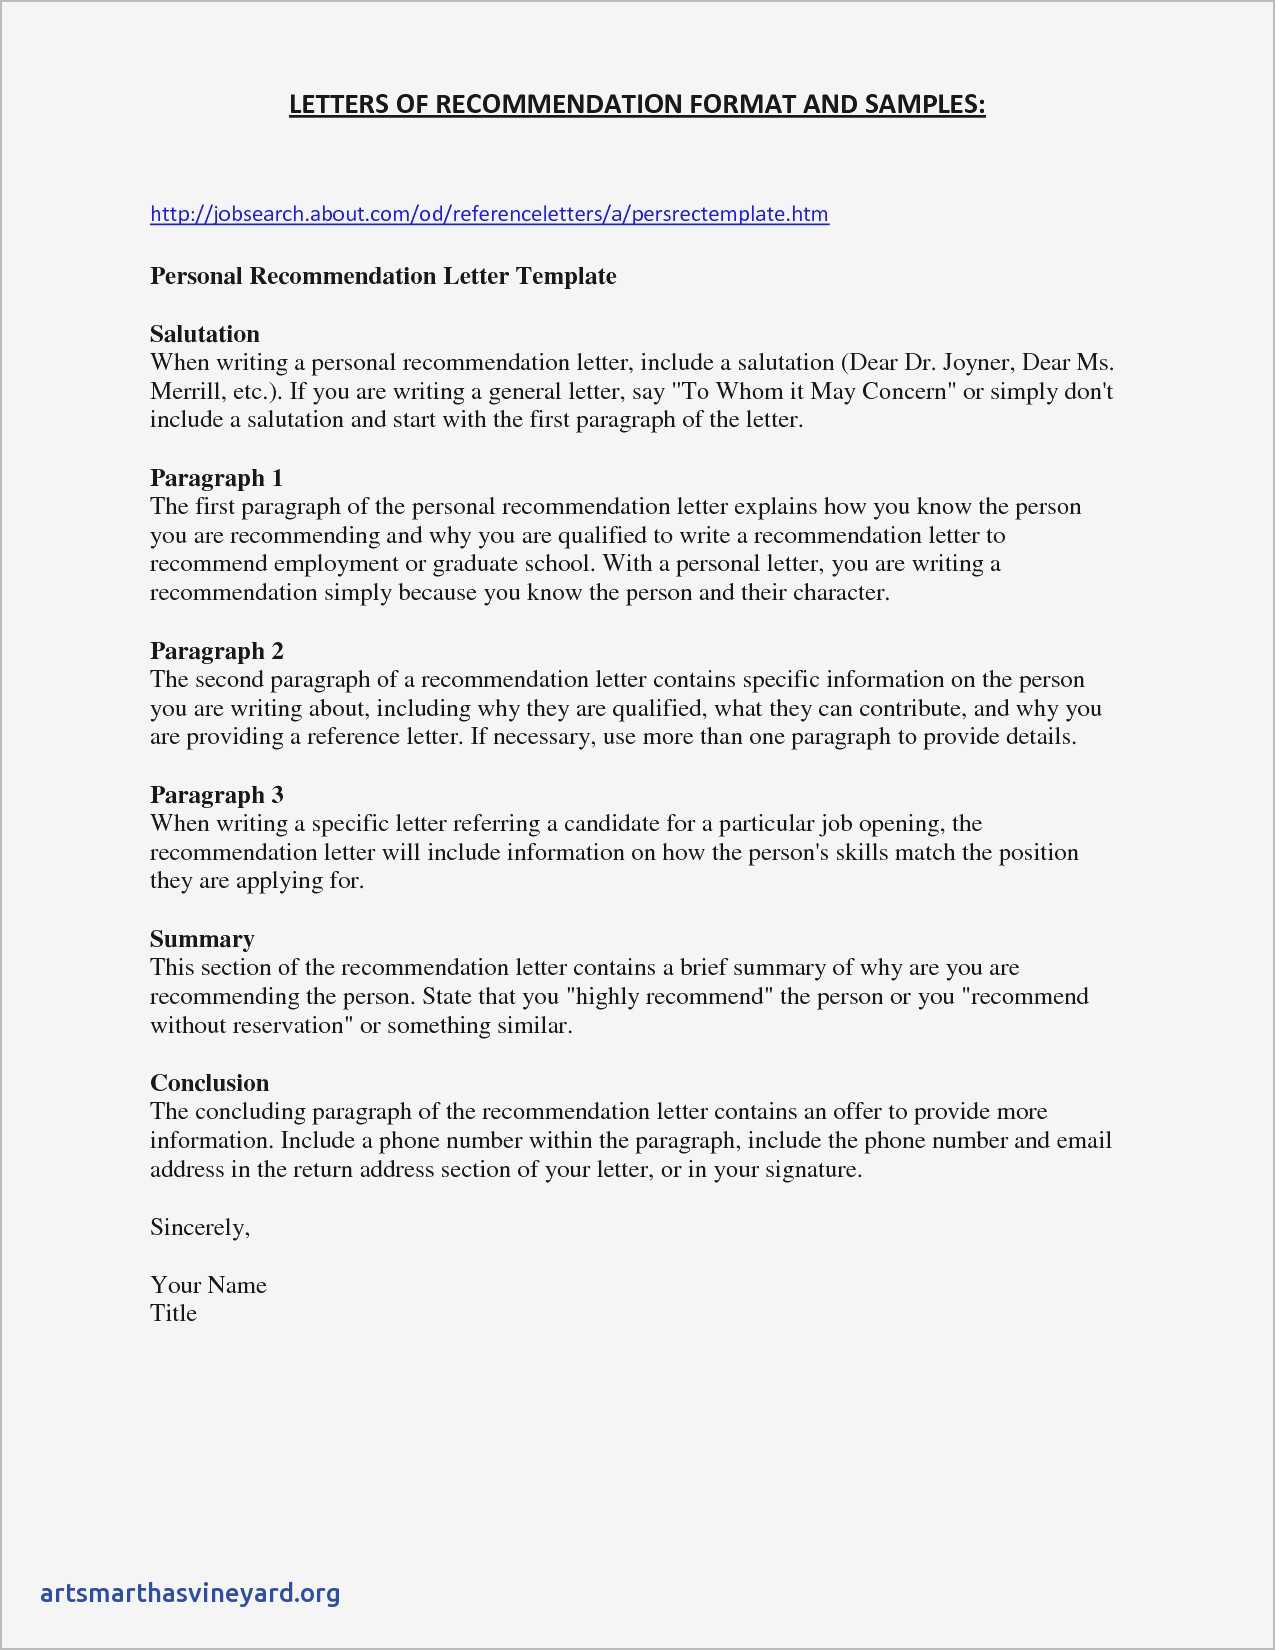 Personal Reference Letter for A Friend Template - Sample Personal Reference Letter for A Friend Samples From Character